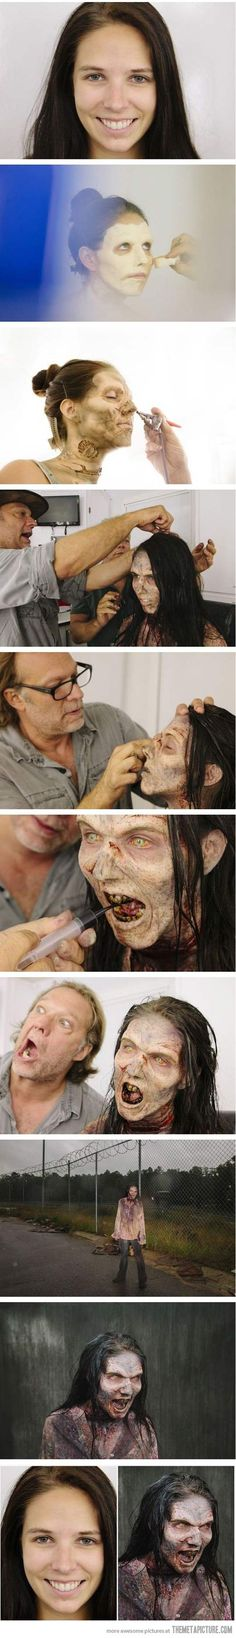 Straight from 'The Walking Dead' set: how the pros get zombie-fied